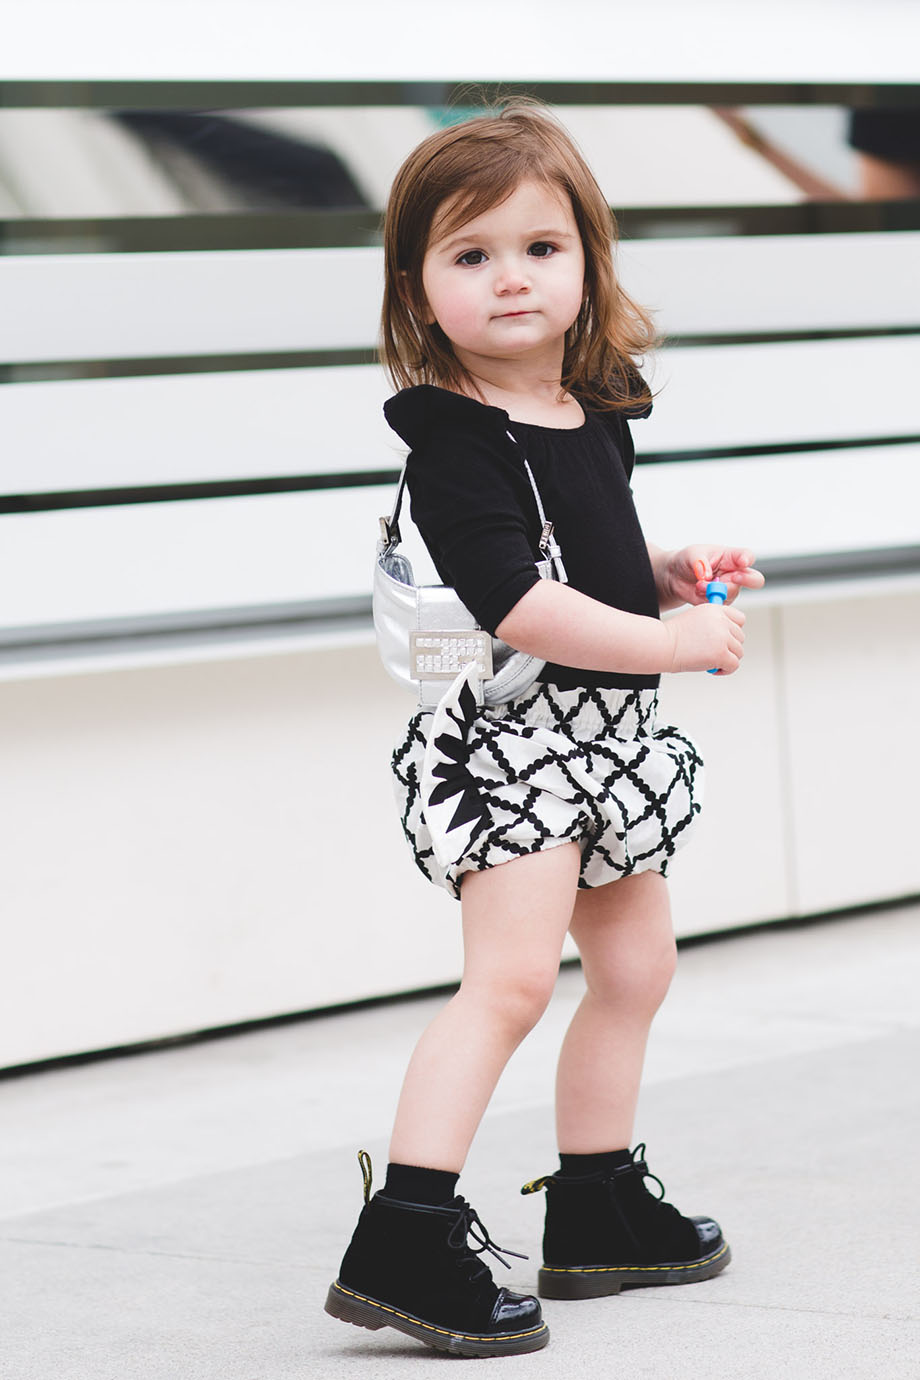 This is a mother daughter fashion post by Glitter and Bubbles on Rodeo Drive in California.